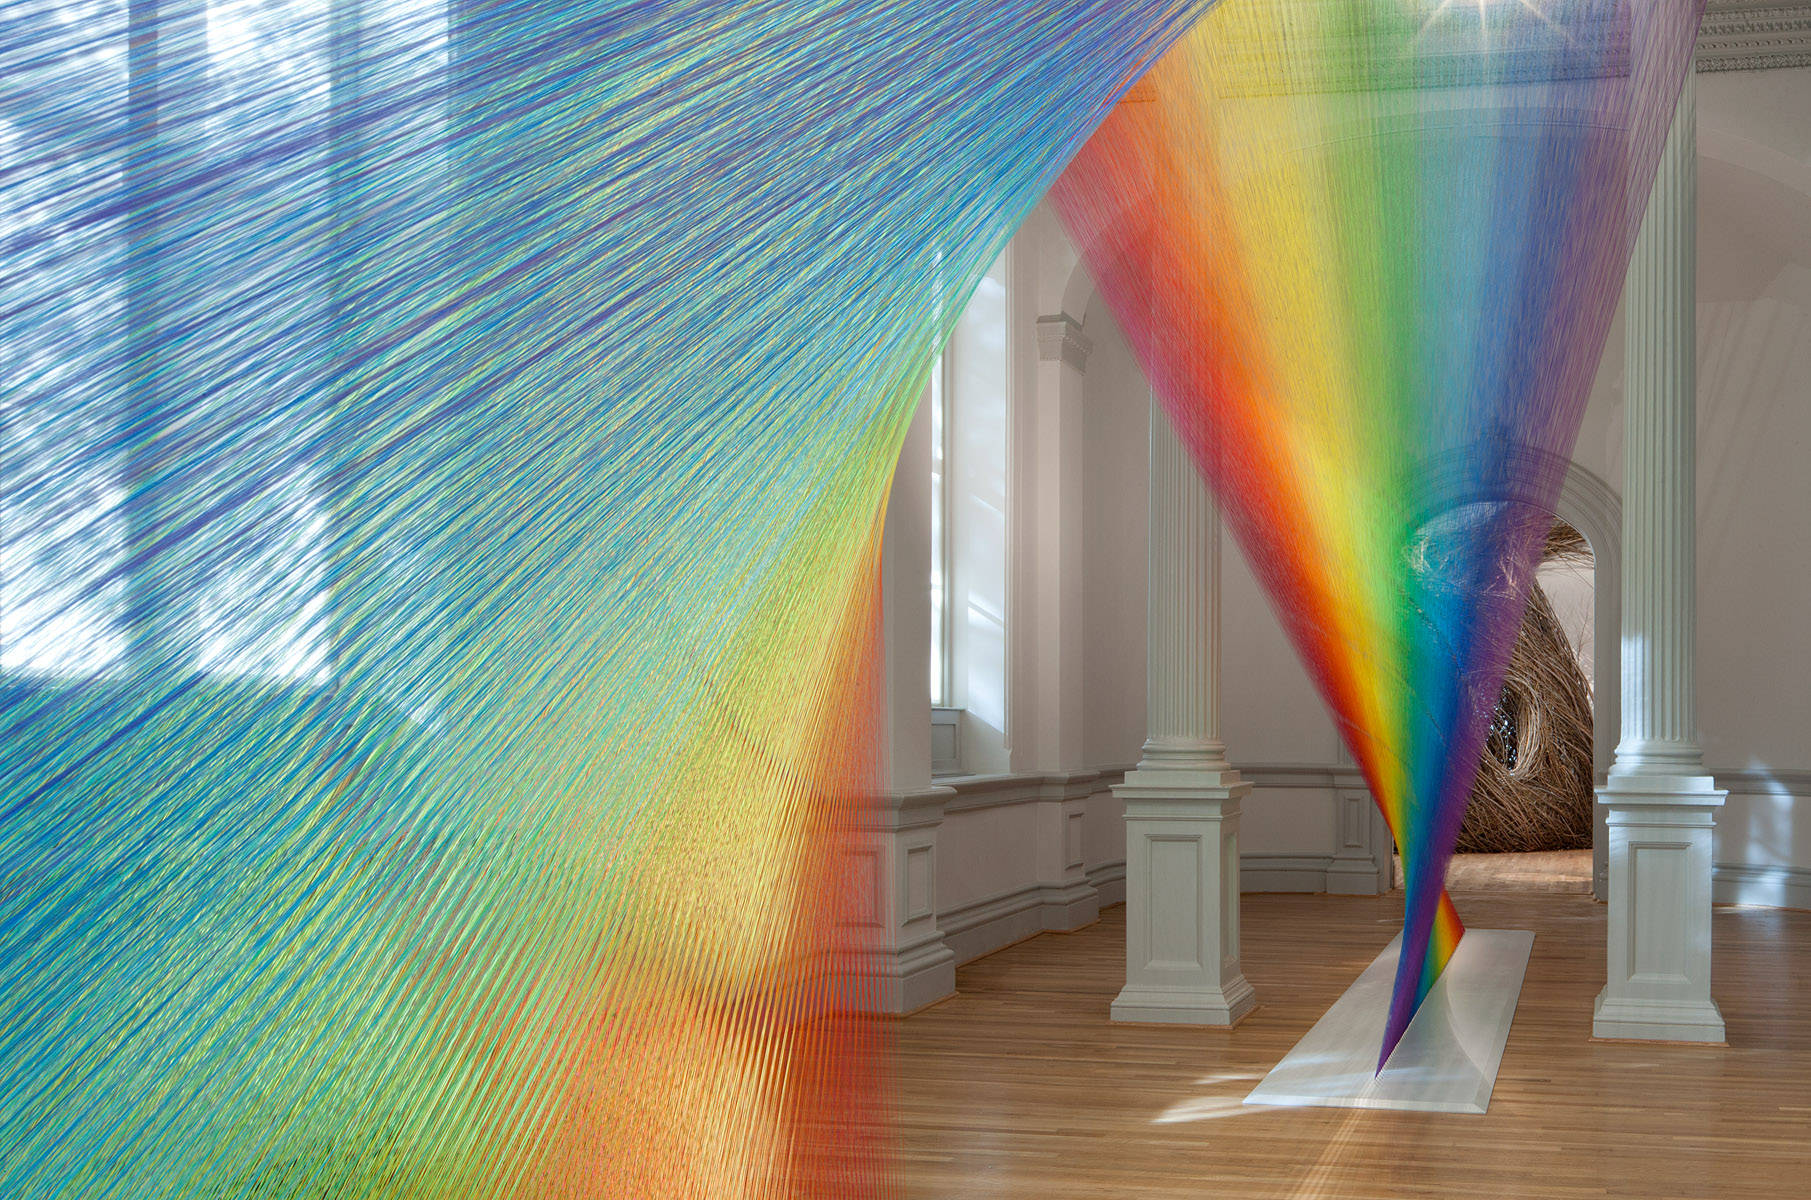 Miles of Thread and a Giant Needle Weave Indoor Rainbows - VICE